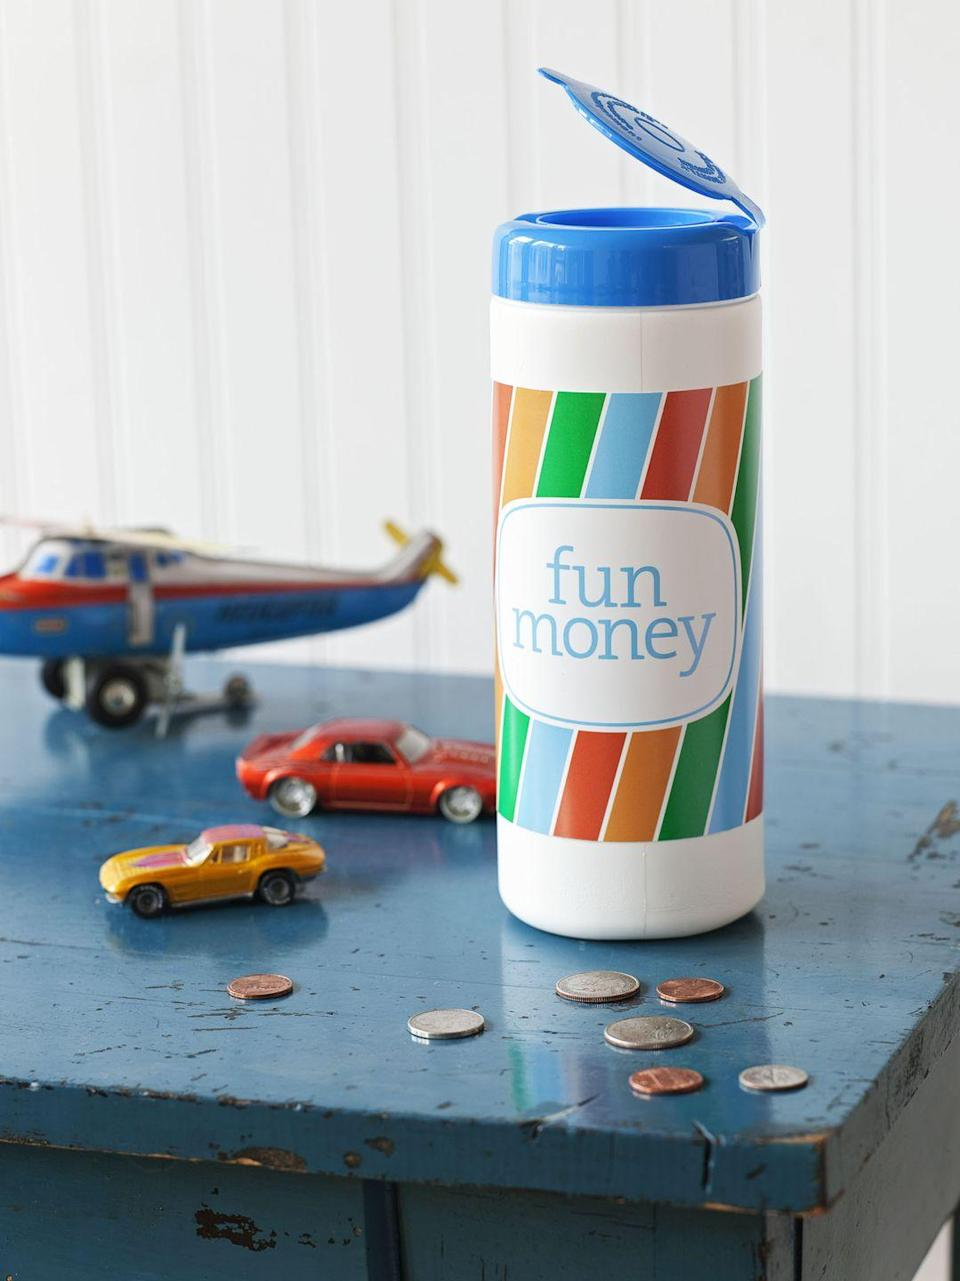 "<p>Want to teach your kids that every penny counts? Make a coin bank out of an empty disinfectant wipes container. Clear the outside of the container and attach your own ""Fun Money"" label. </p>"